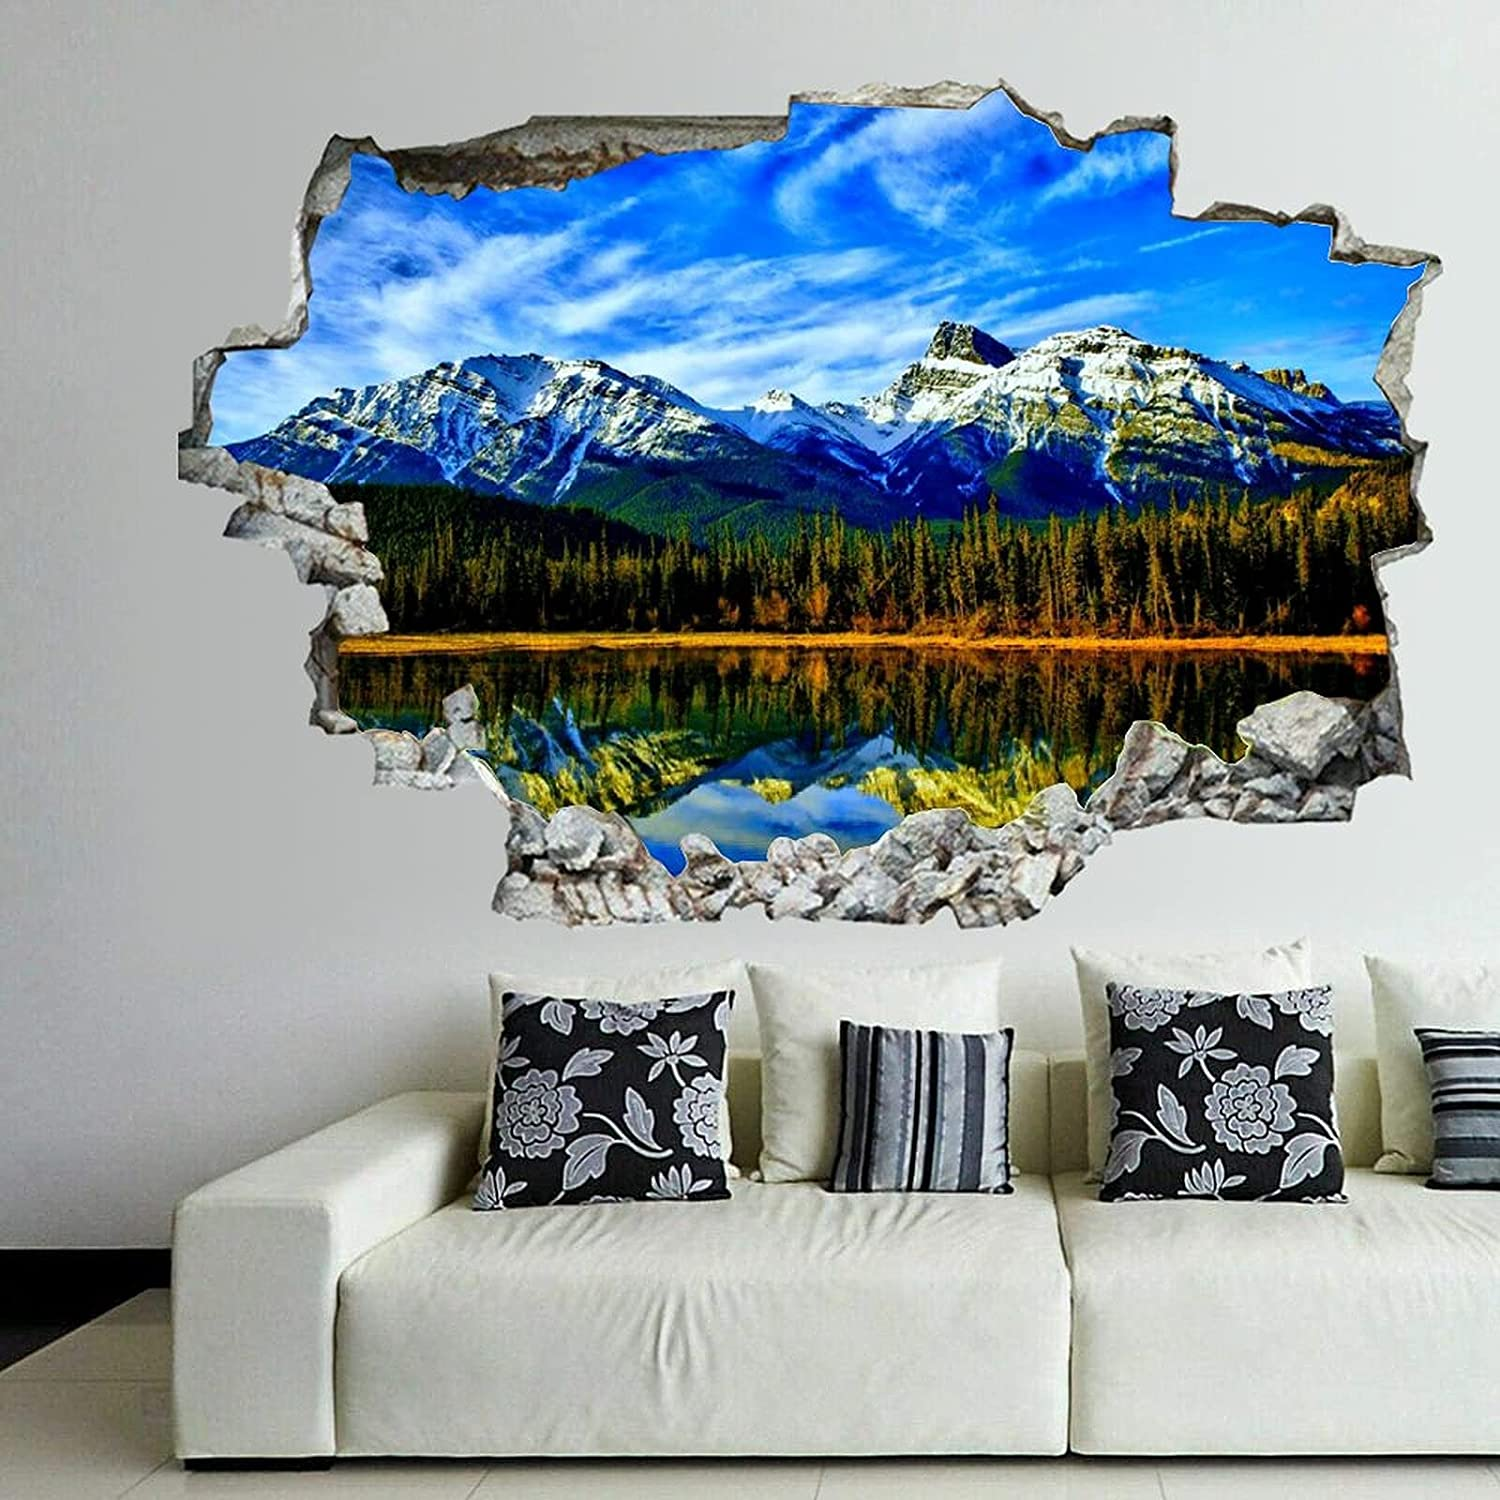 Diuangfoong Lake Mountains Popular product Forest Natural Wall 3D Decals Scenery Spasm price